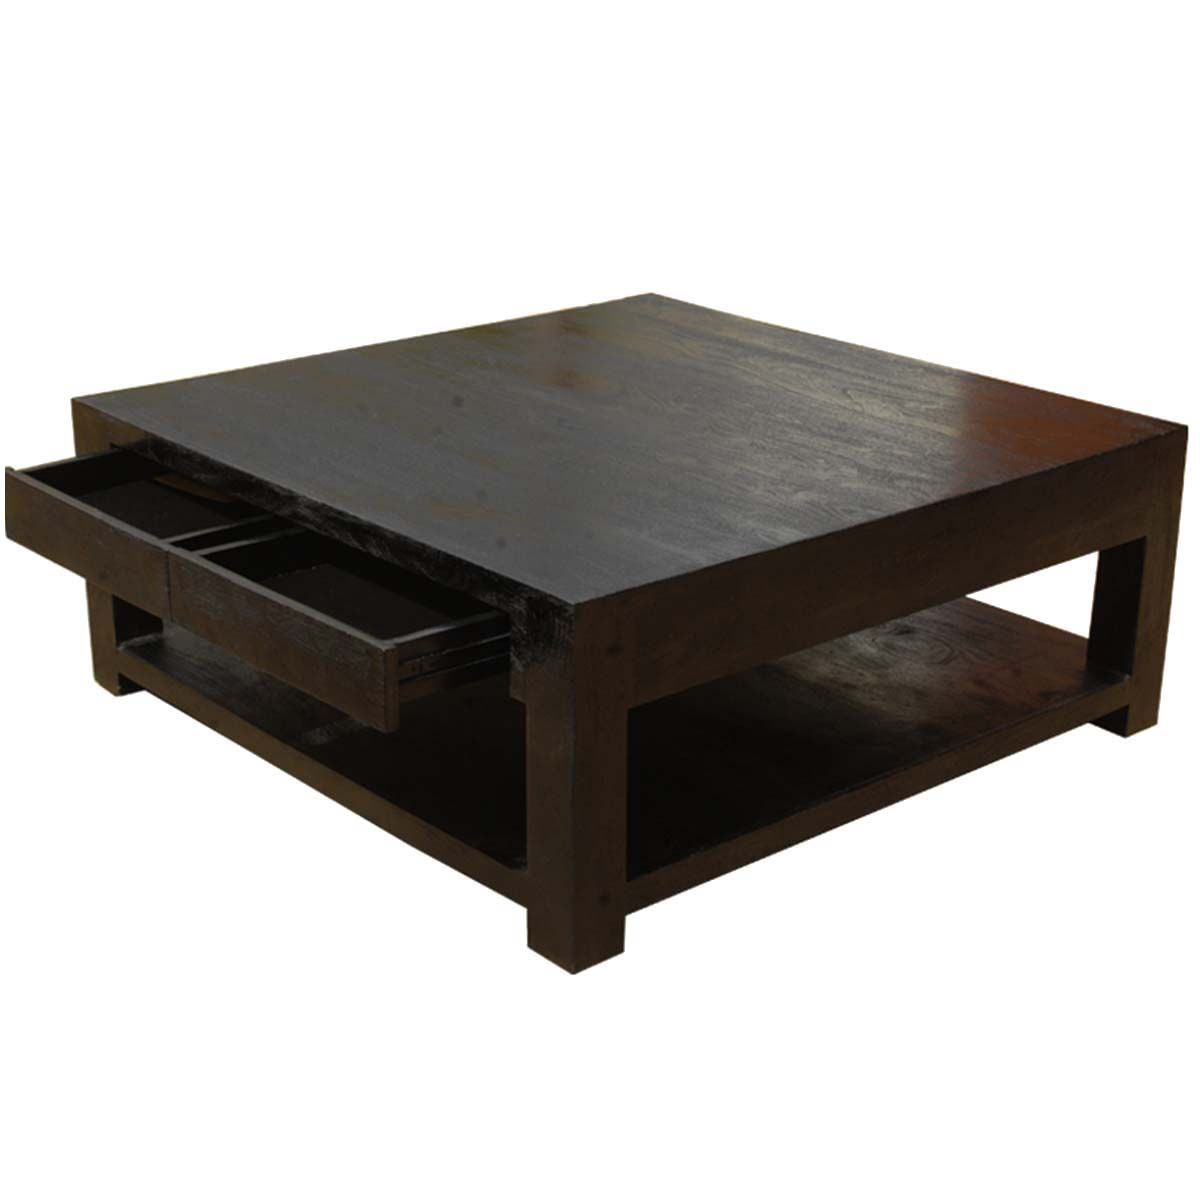 Glencoe Large Square Coffee Table Solid Wood Contemporary